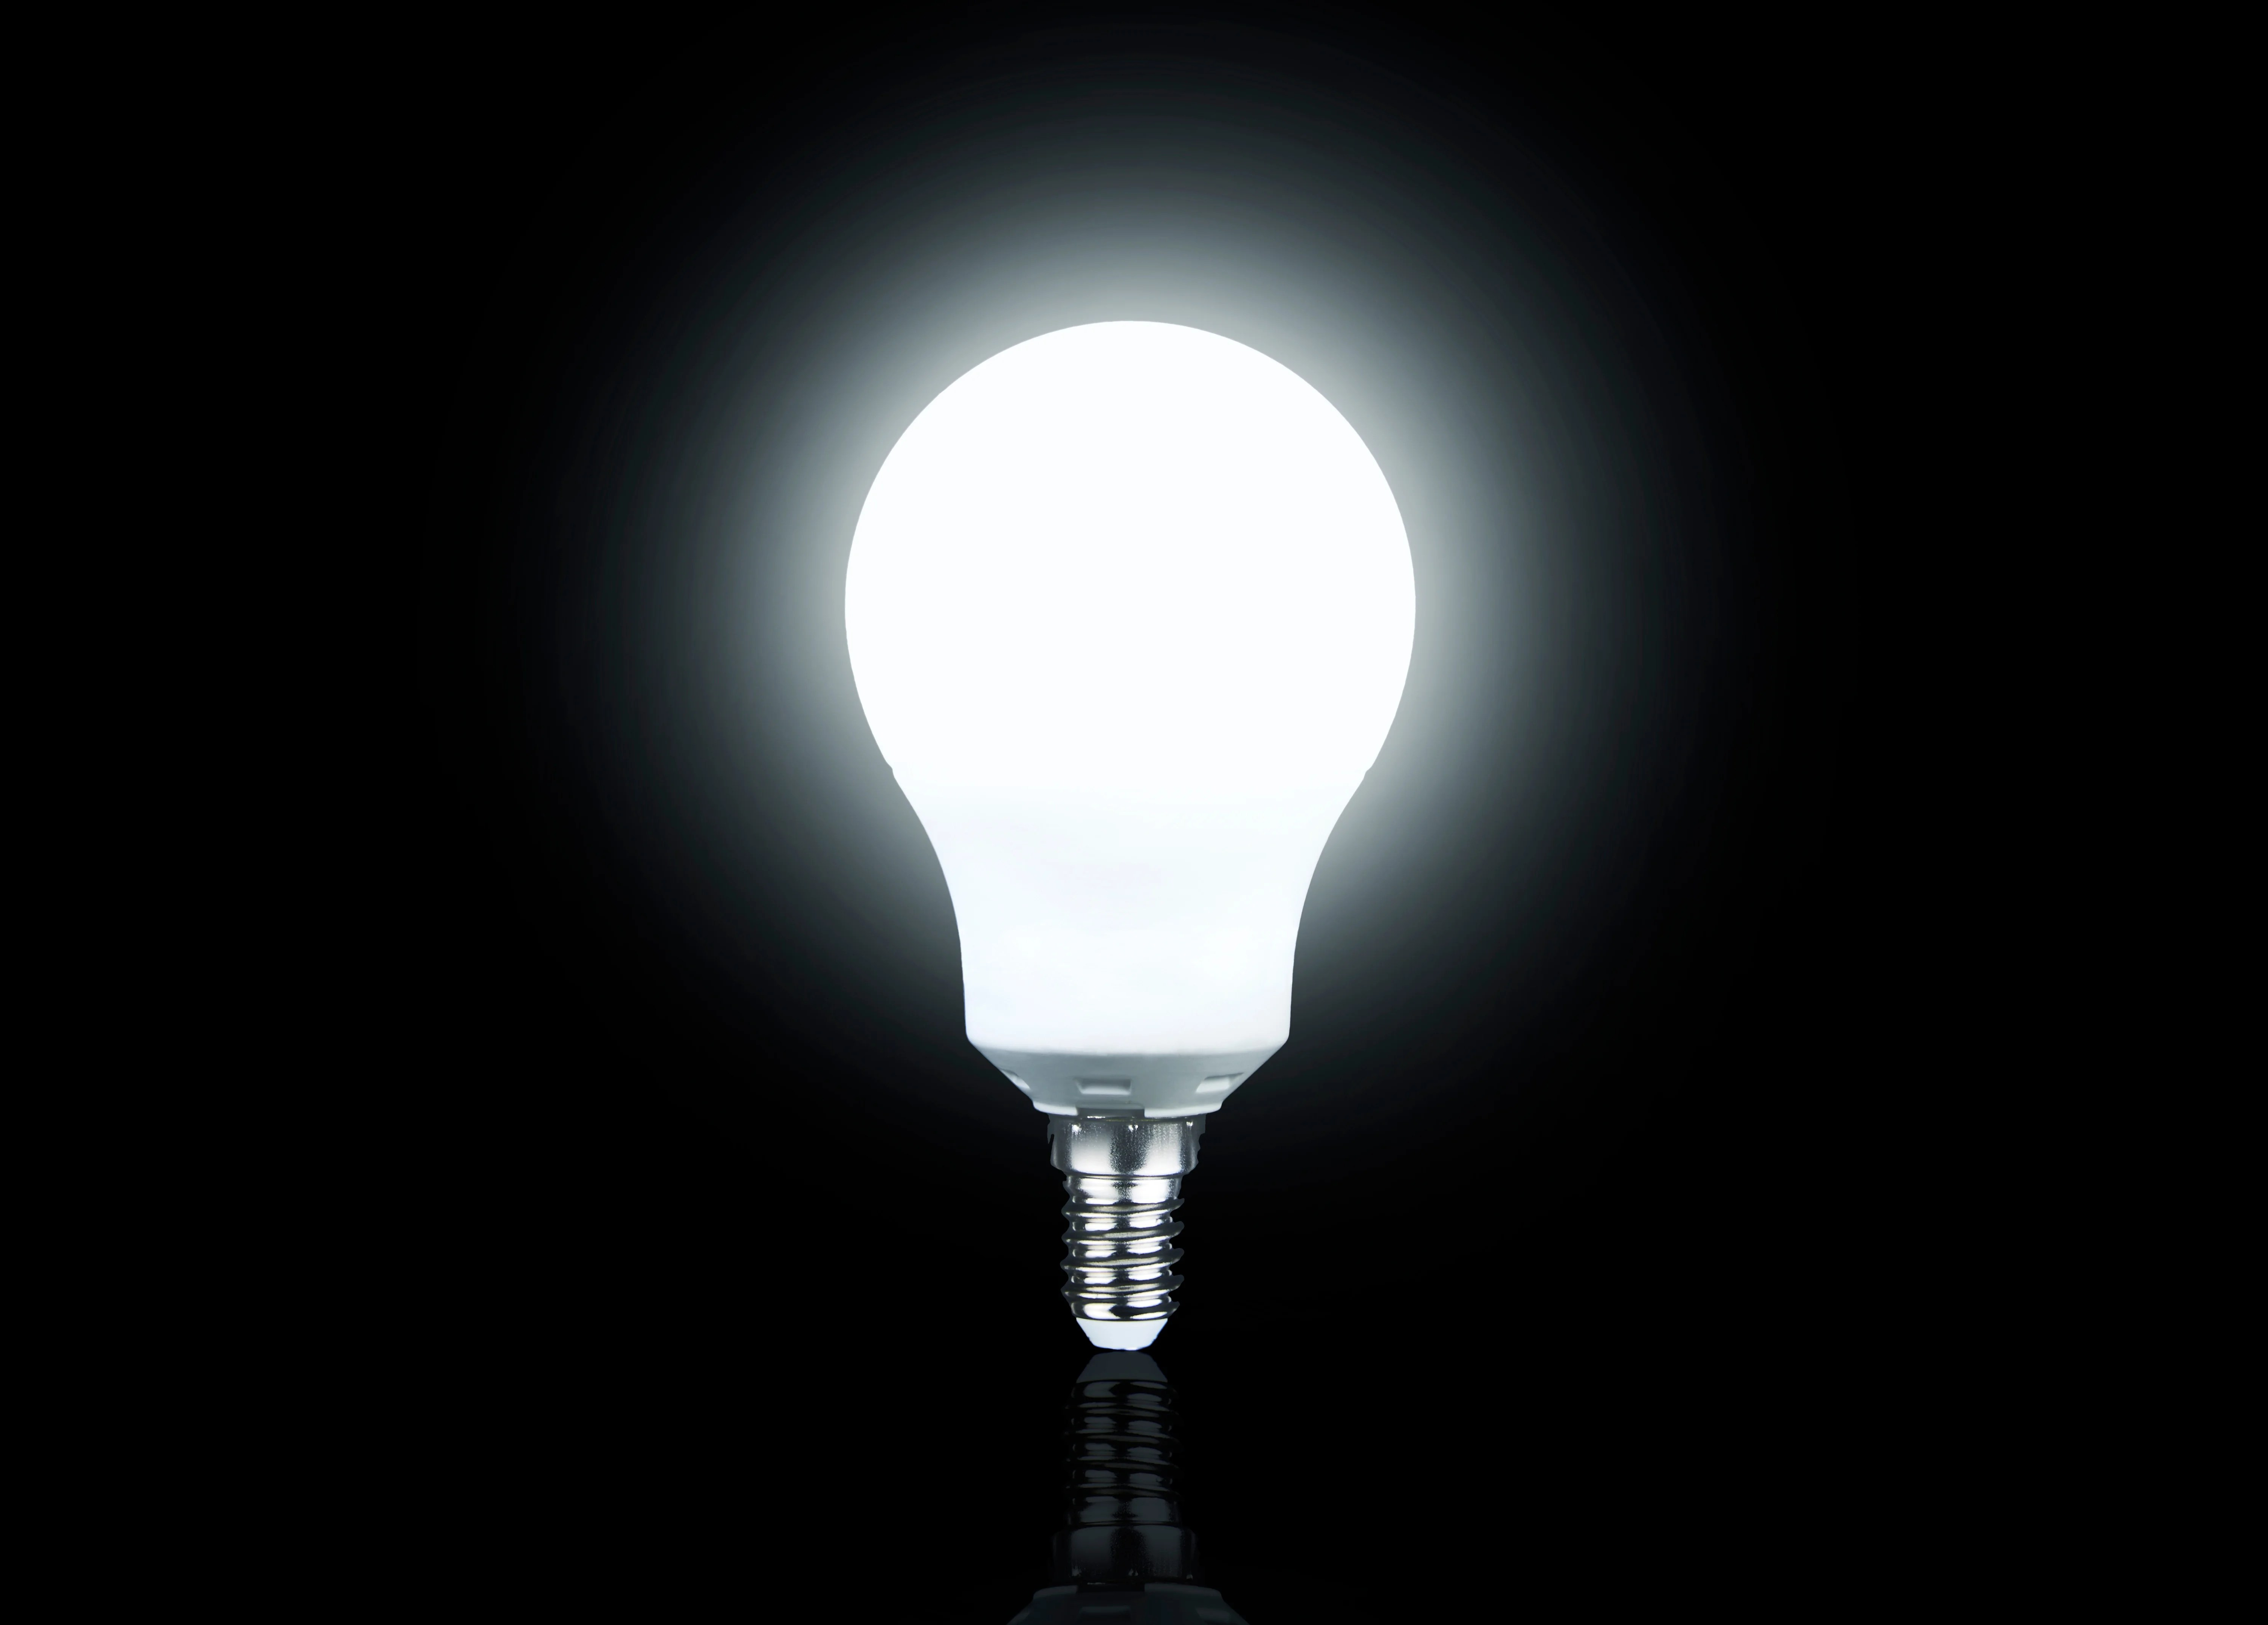 Led Lights Bad Health The Dark Side Of Led Lightbulbs Scientific American